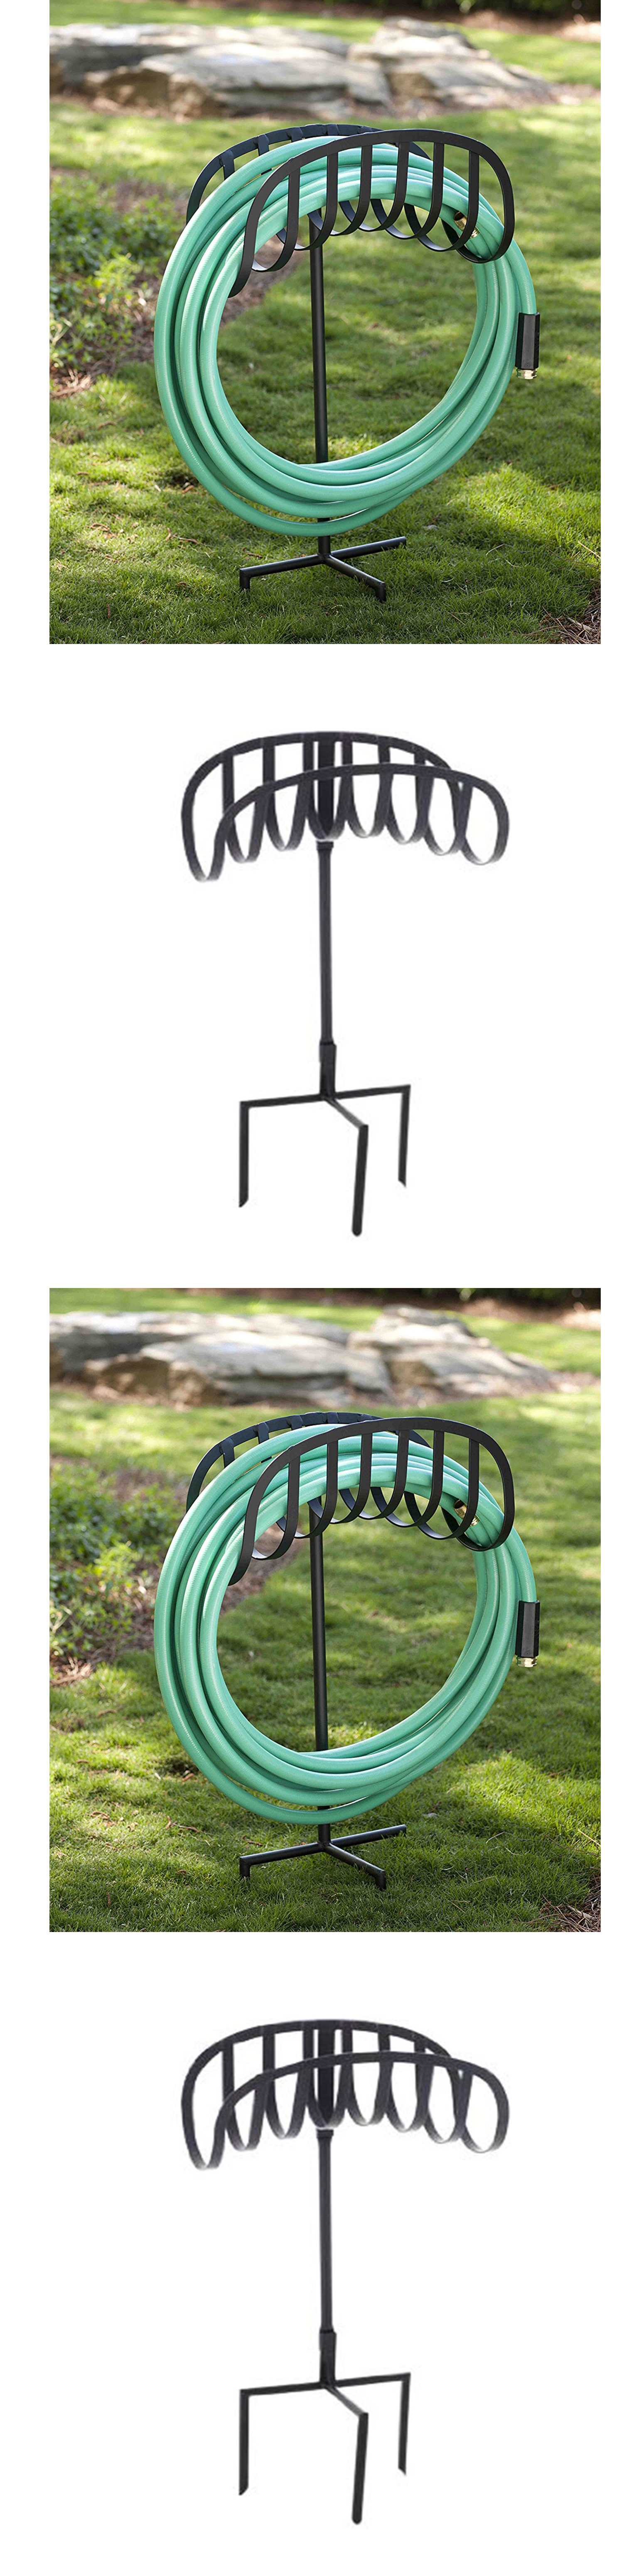 Hose Reels and Storage 46435: Metal Garden Water Hose Stand Holder ...